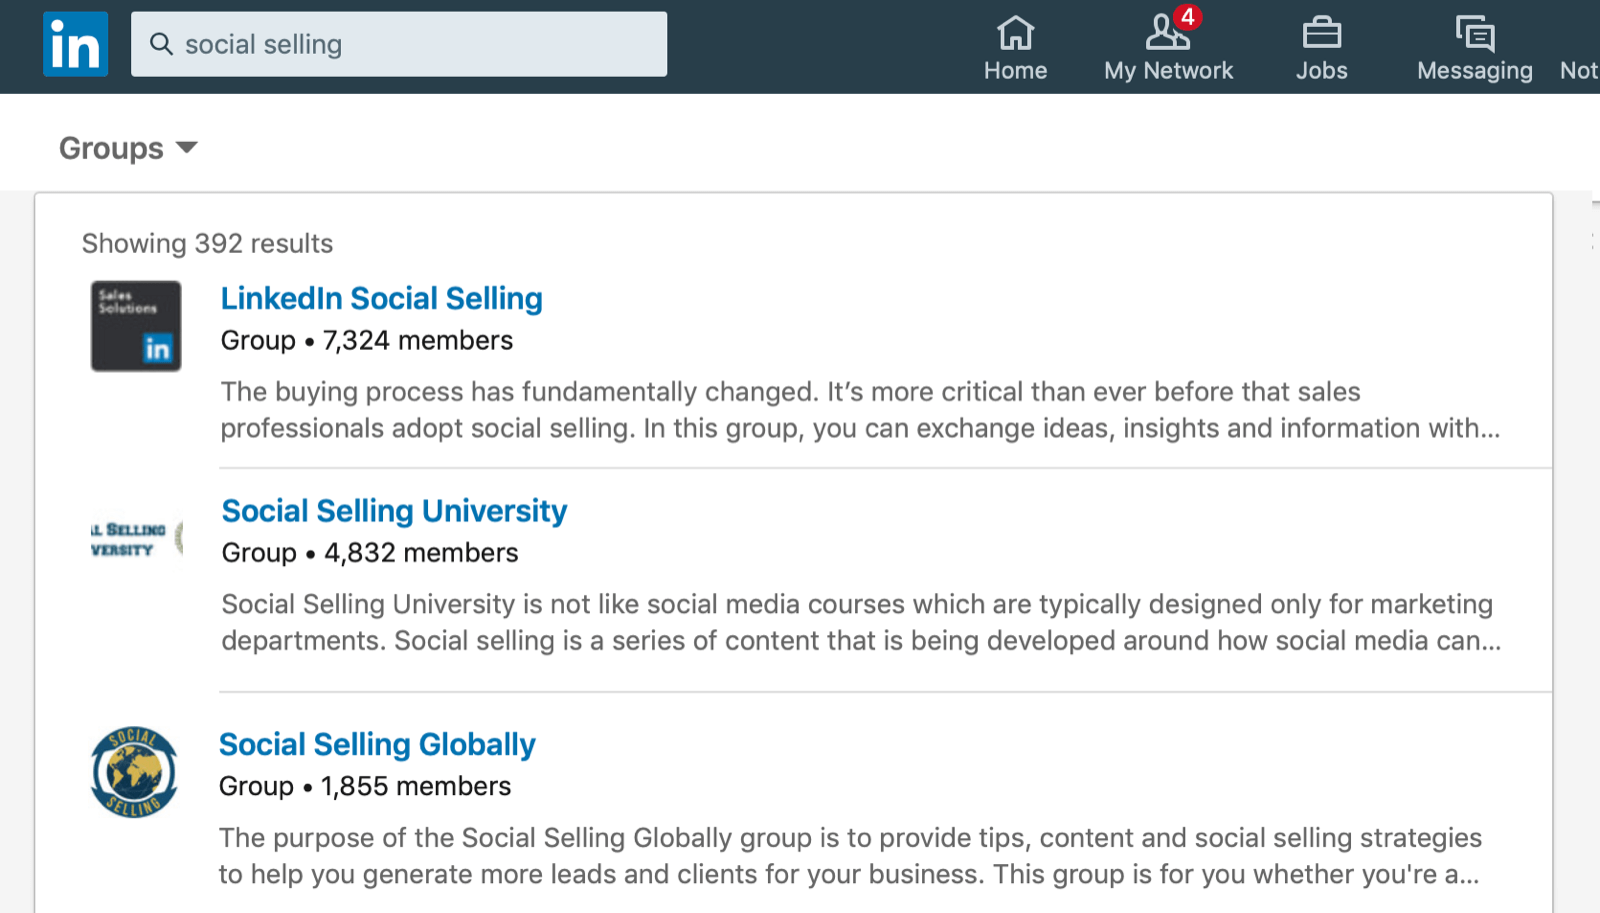 LinkedIn group page panel, showing 3 groups a user could joing relating to social selling